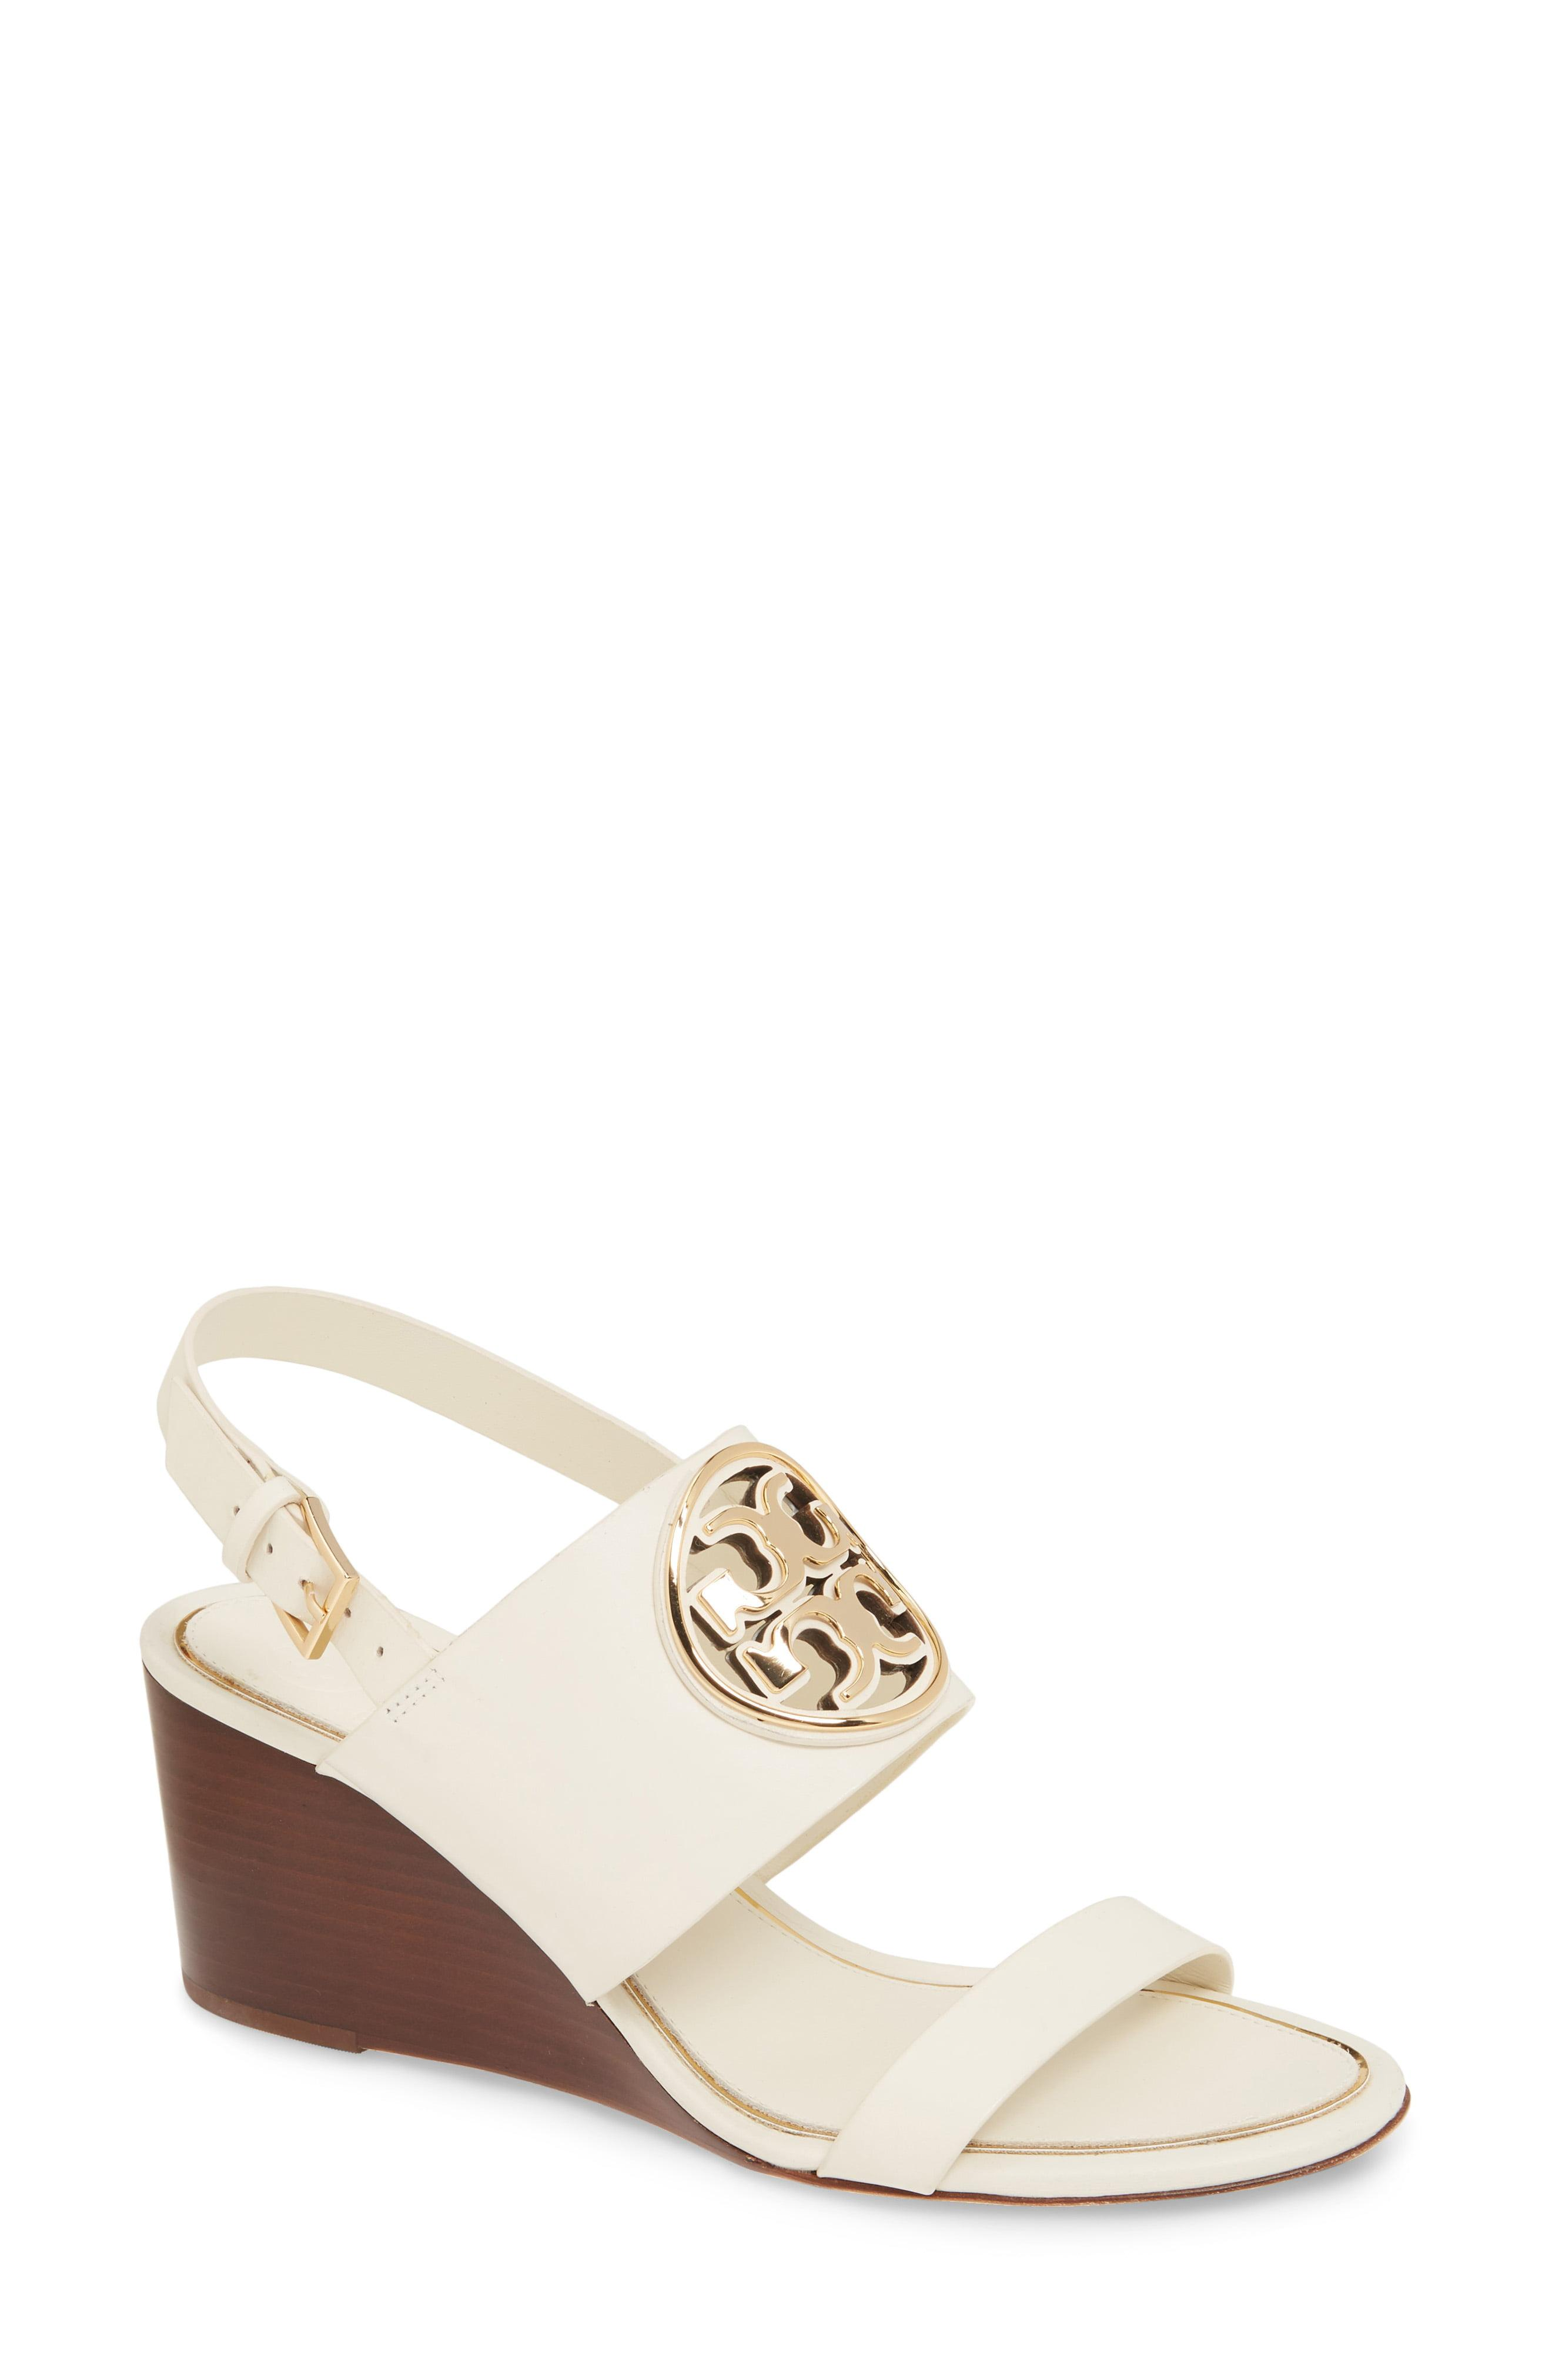 9dcbd6cfd46a Lyst - Tory Burch Miller Wedge Sandal in Black